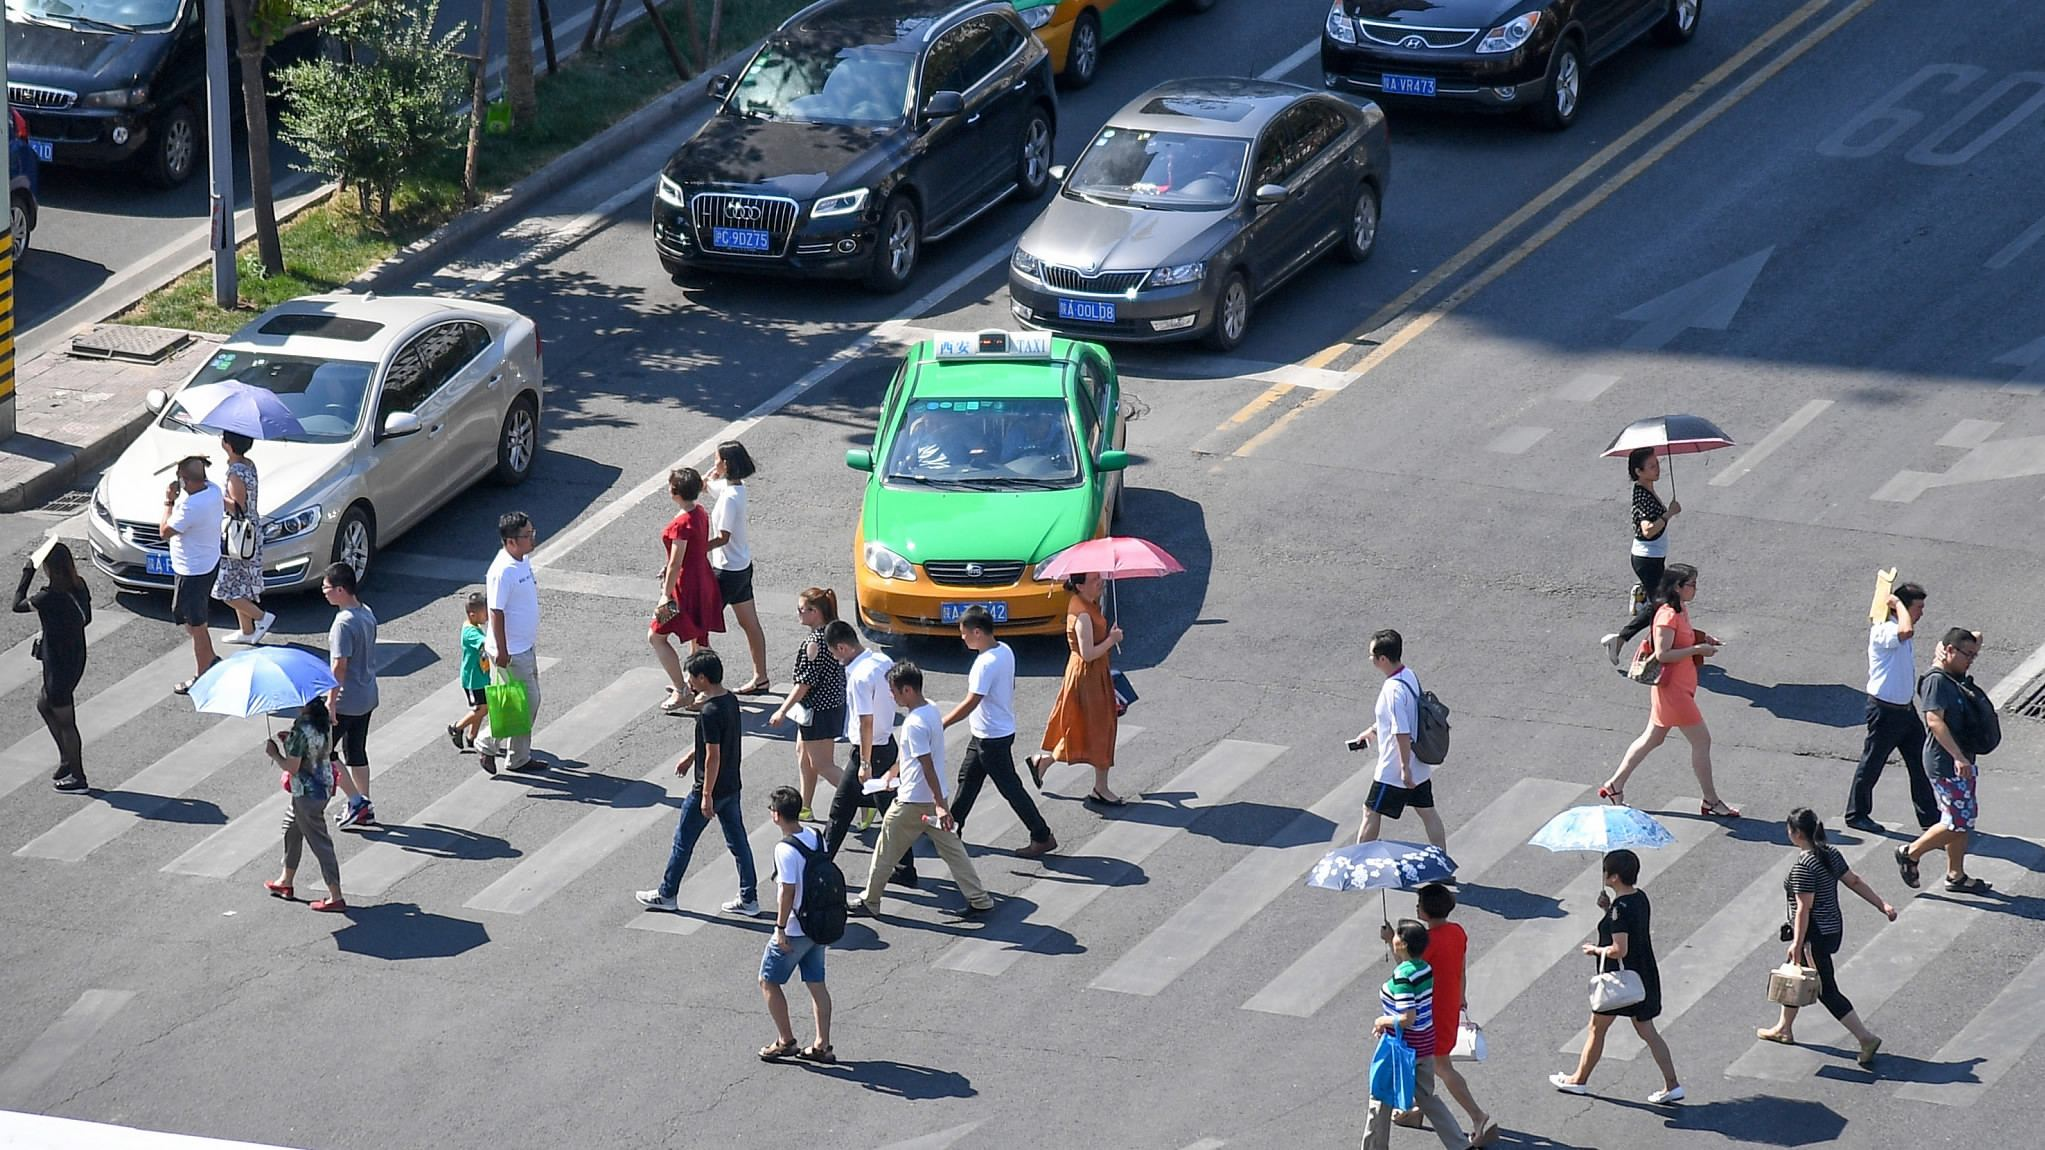 Chinese traffic police adopt innovative ways to deter violations